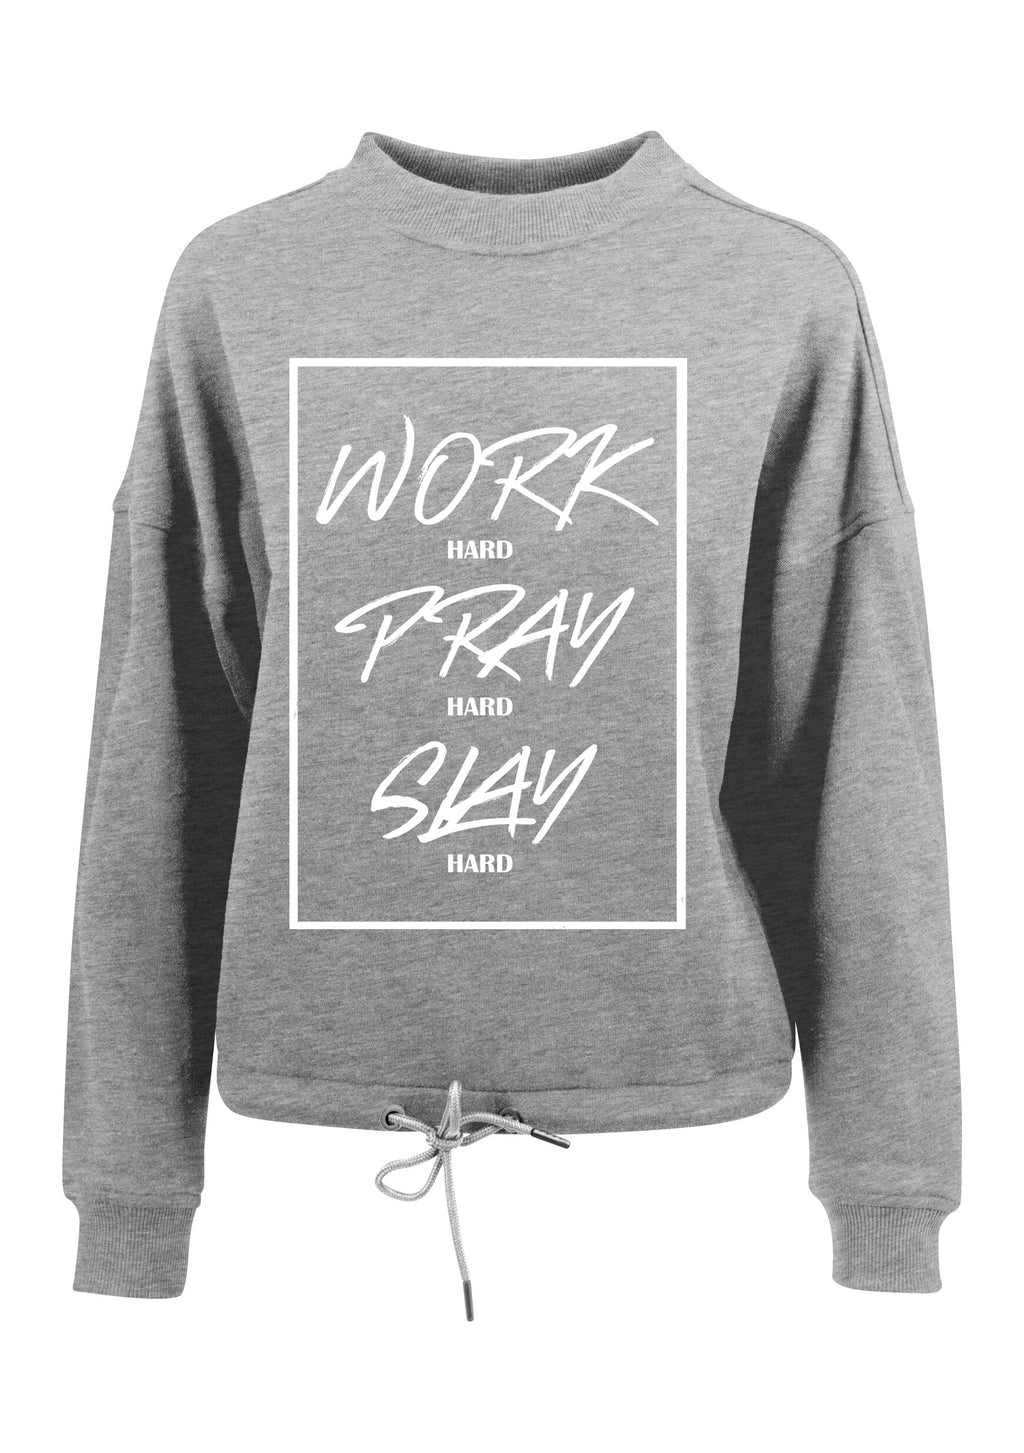 Womens WORK PRAY SLAY oversized crew neck sweatshirt (Heather Grey)